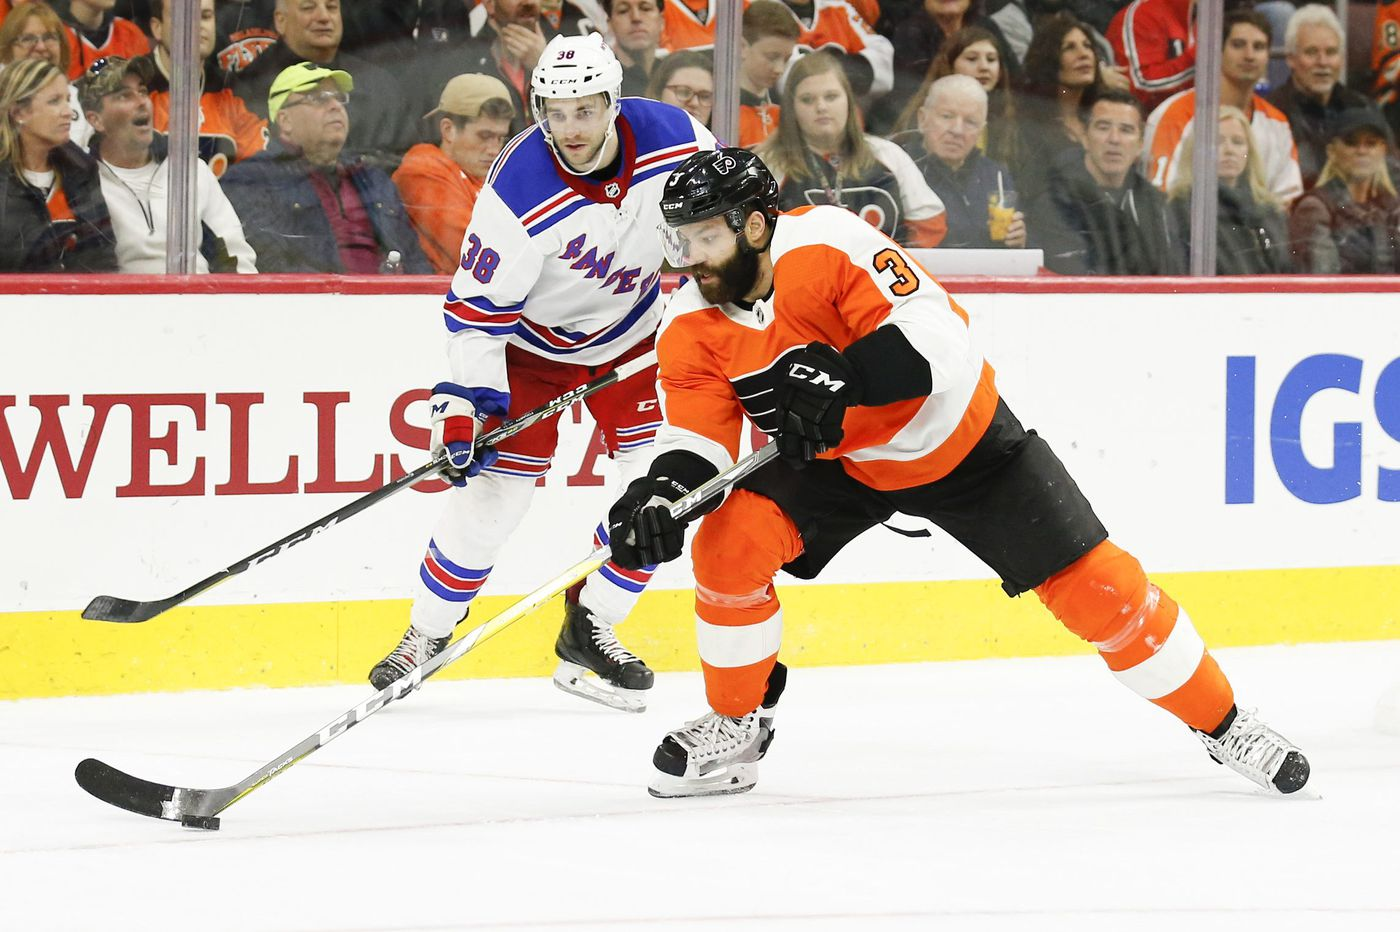 The Flyers' Radko Gudas has stopped being a goon. Can his change of heart last?   Mike Sielski